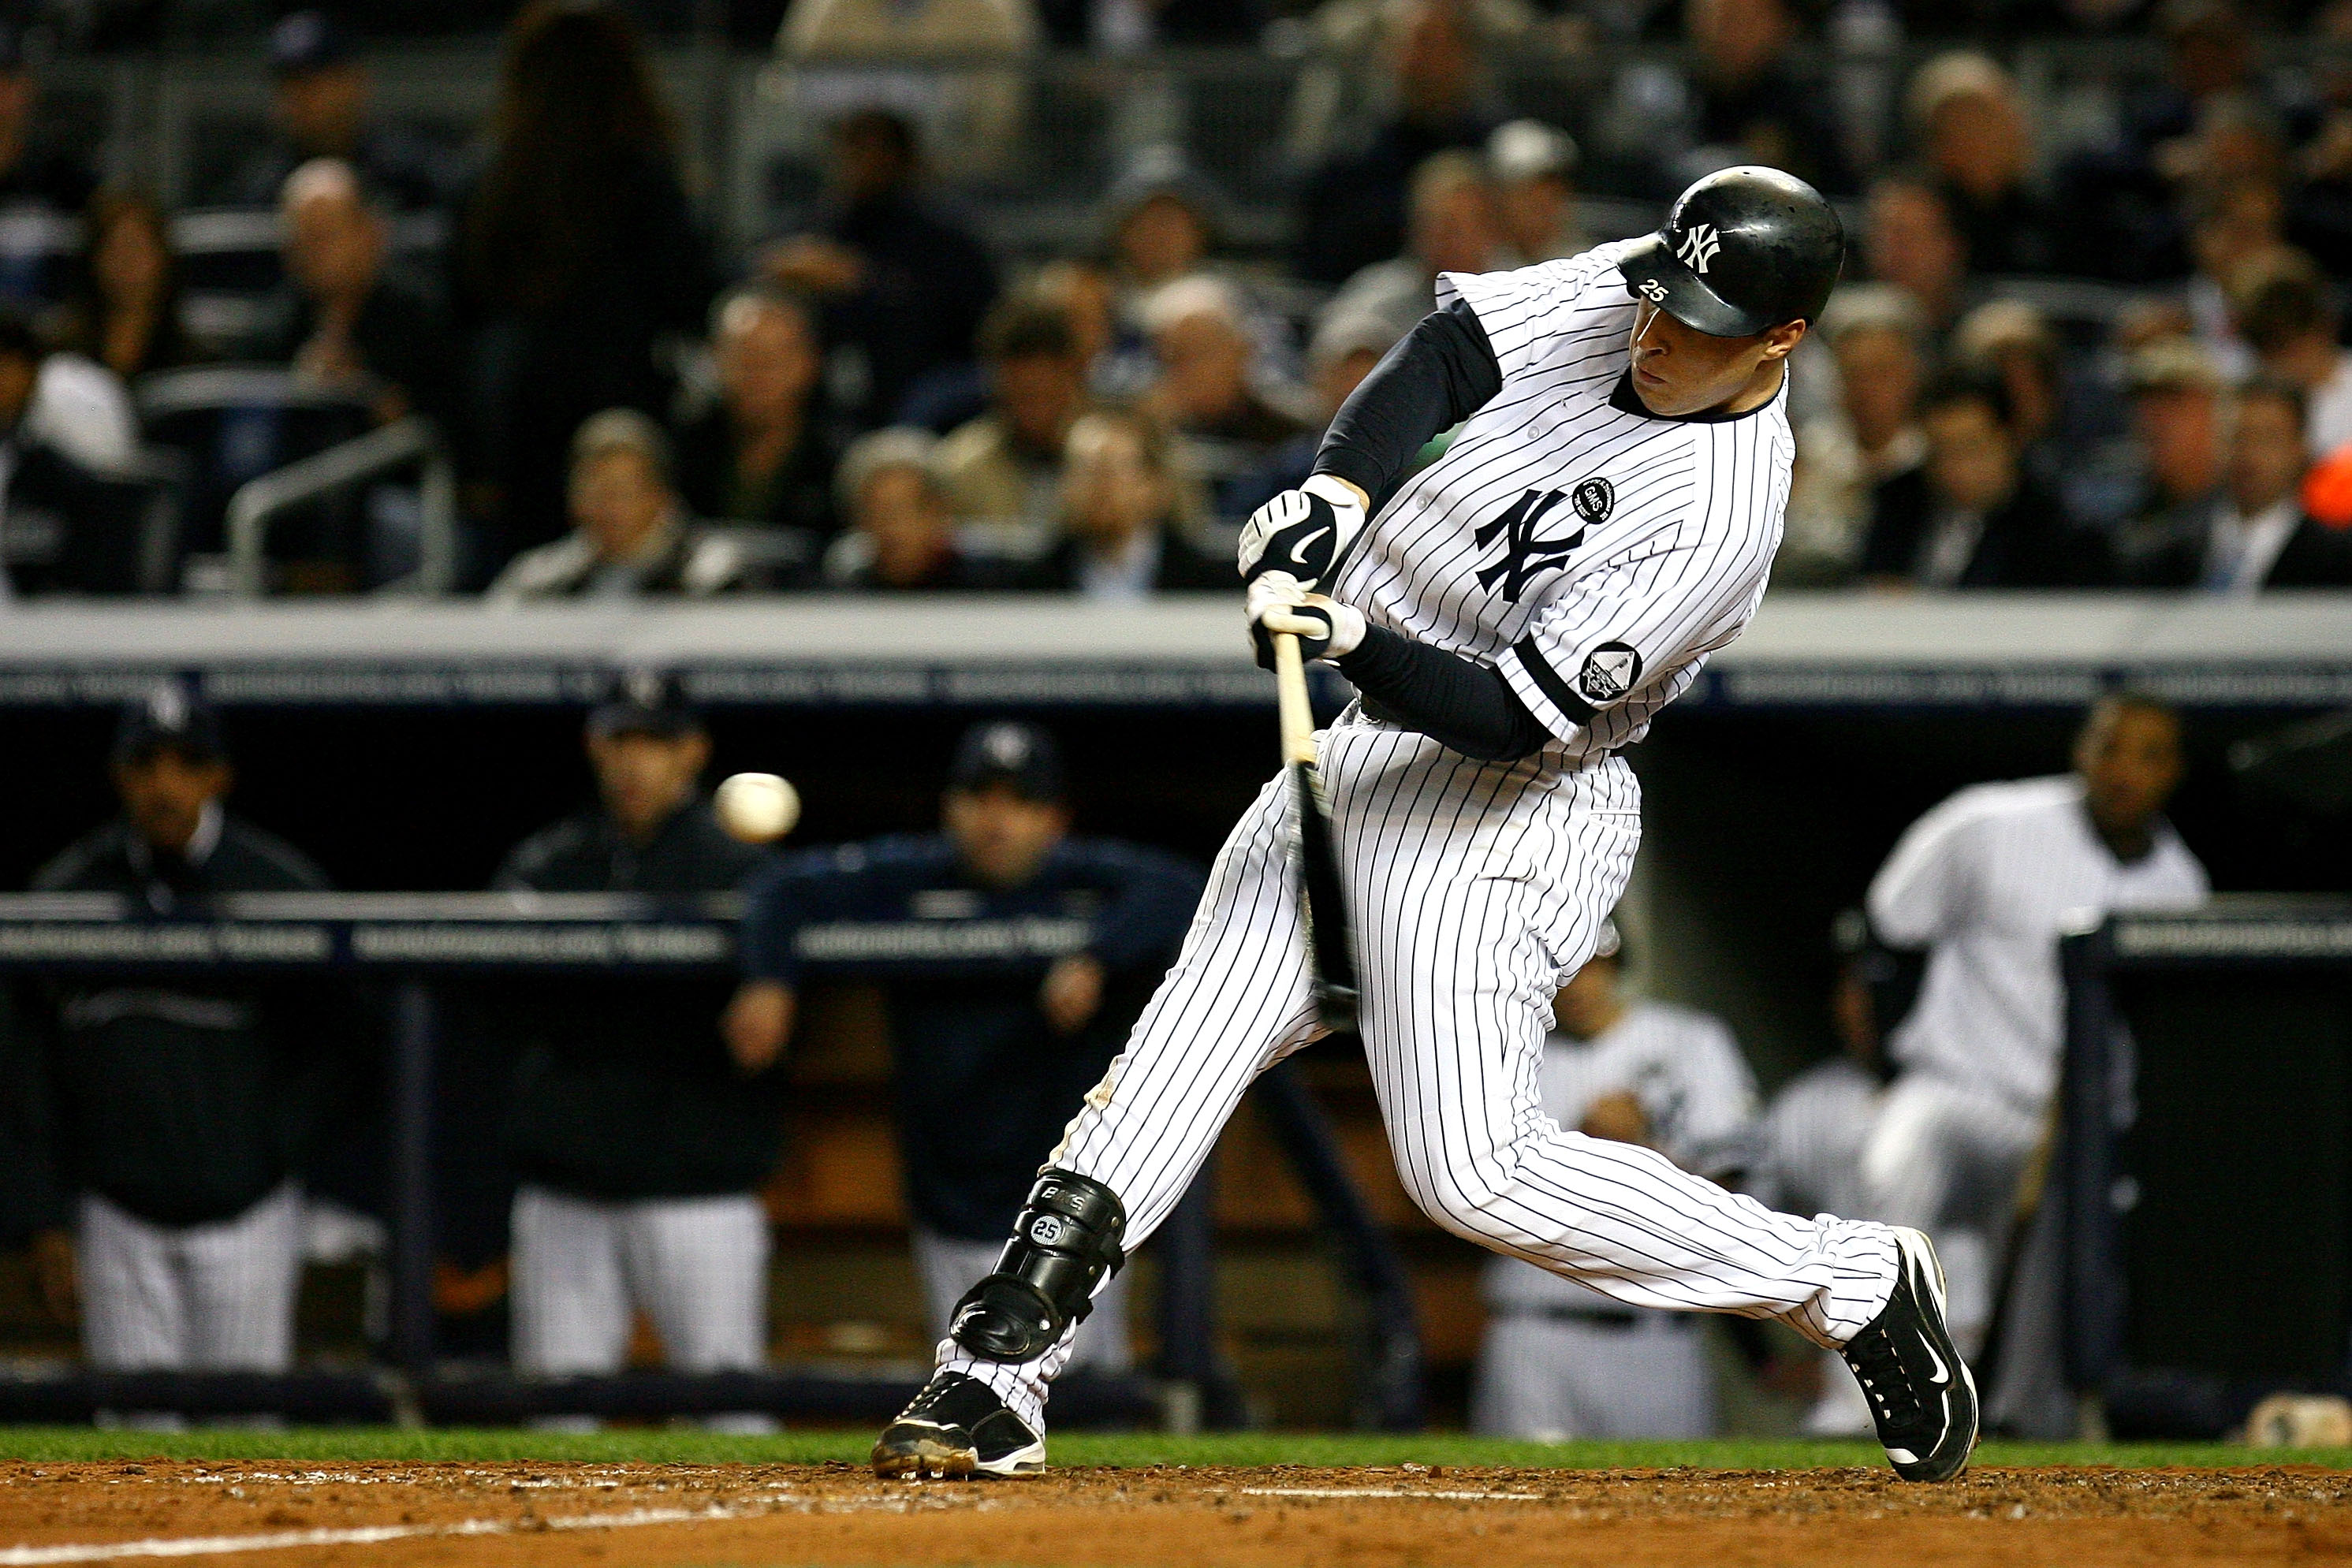 Mark Teixeira is the Big Stick in the Big Apple